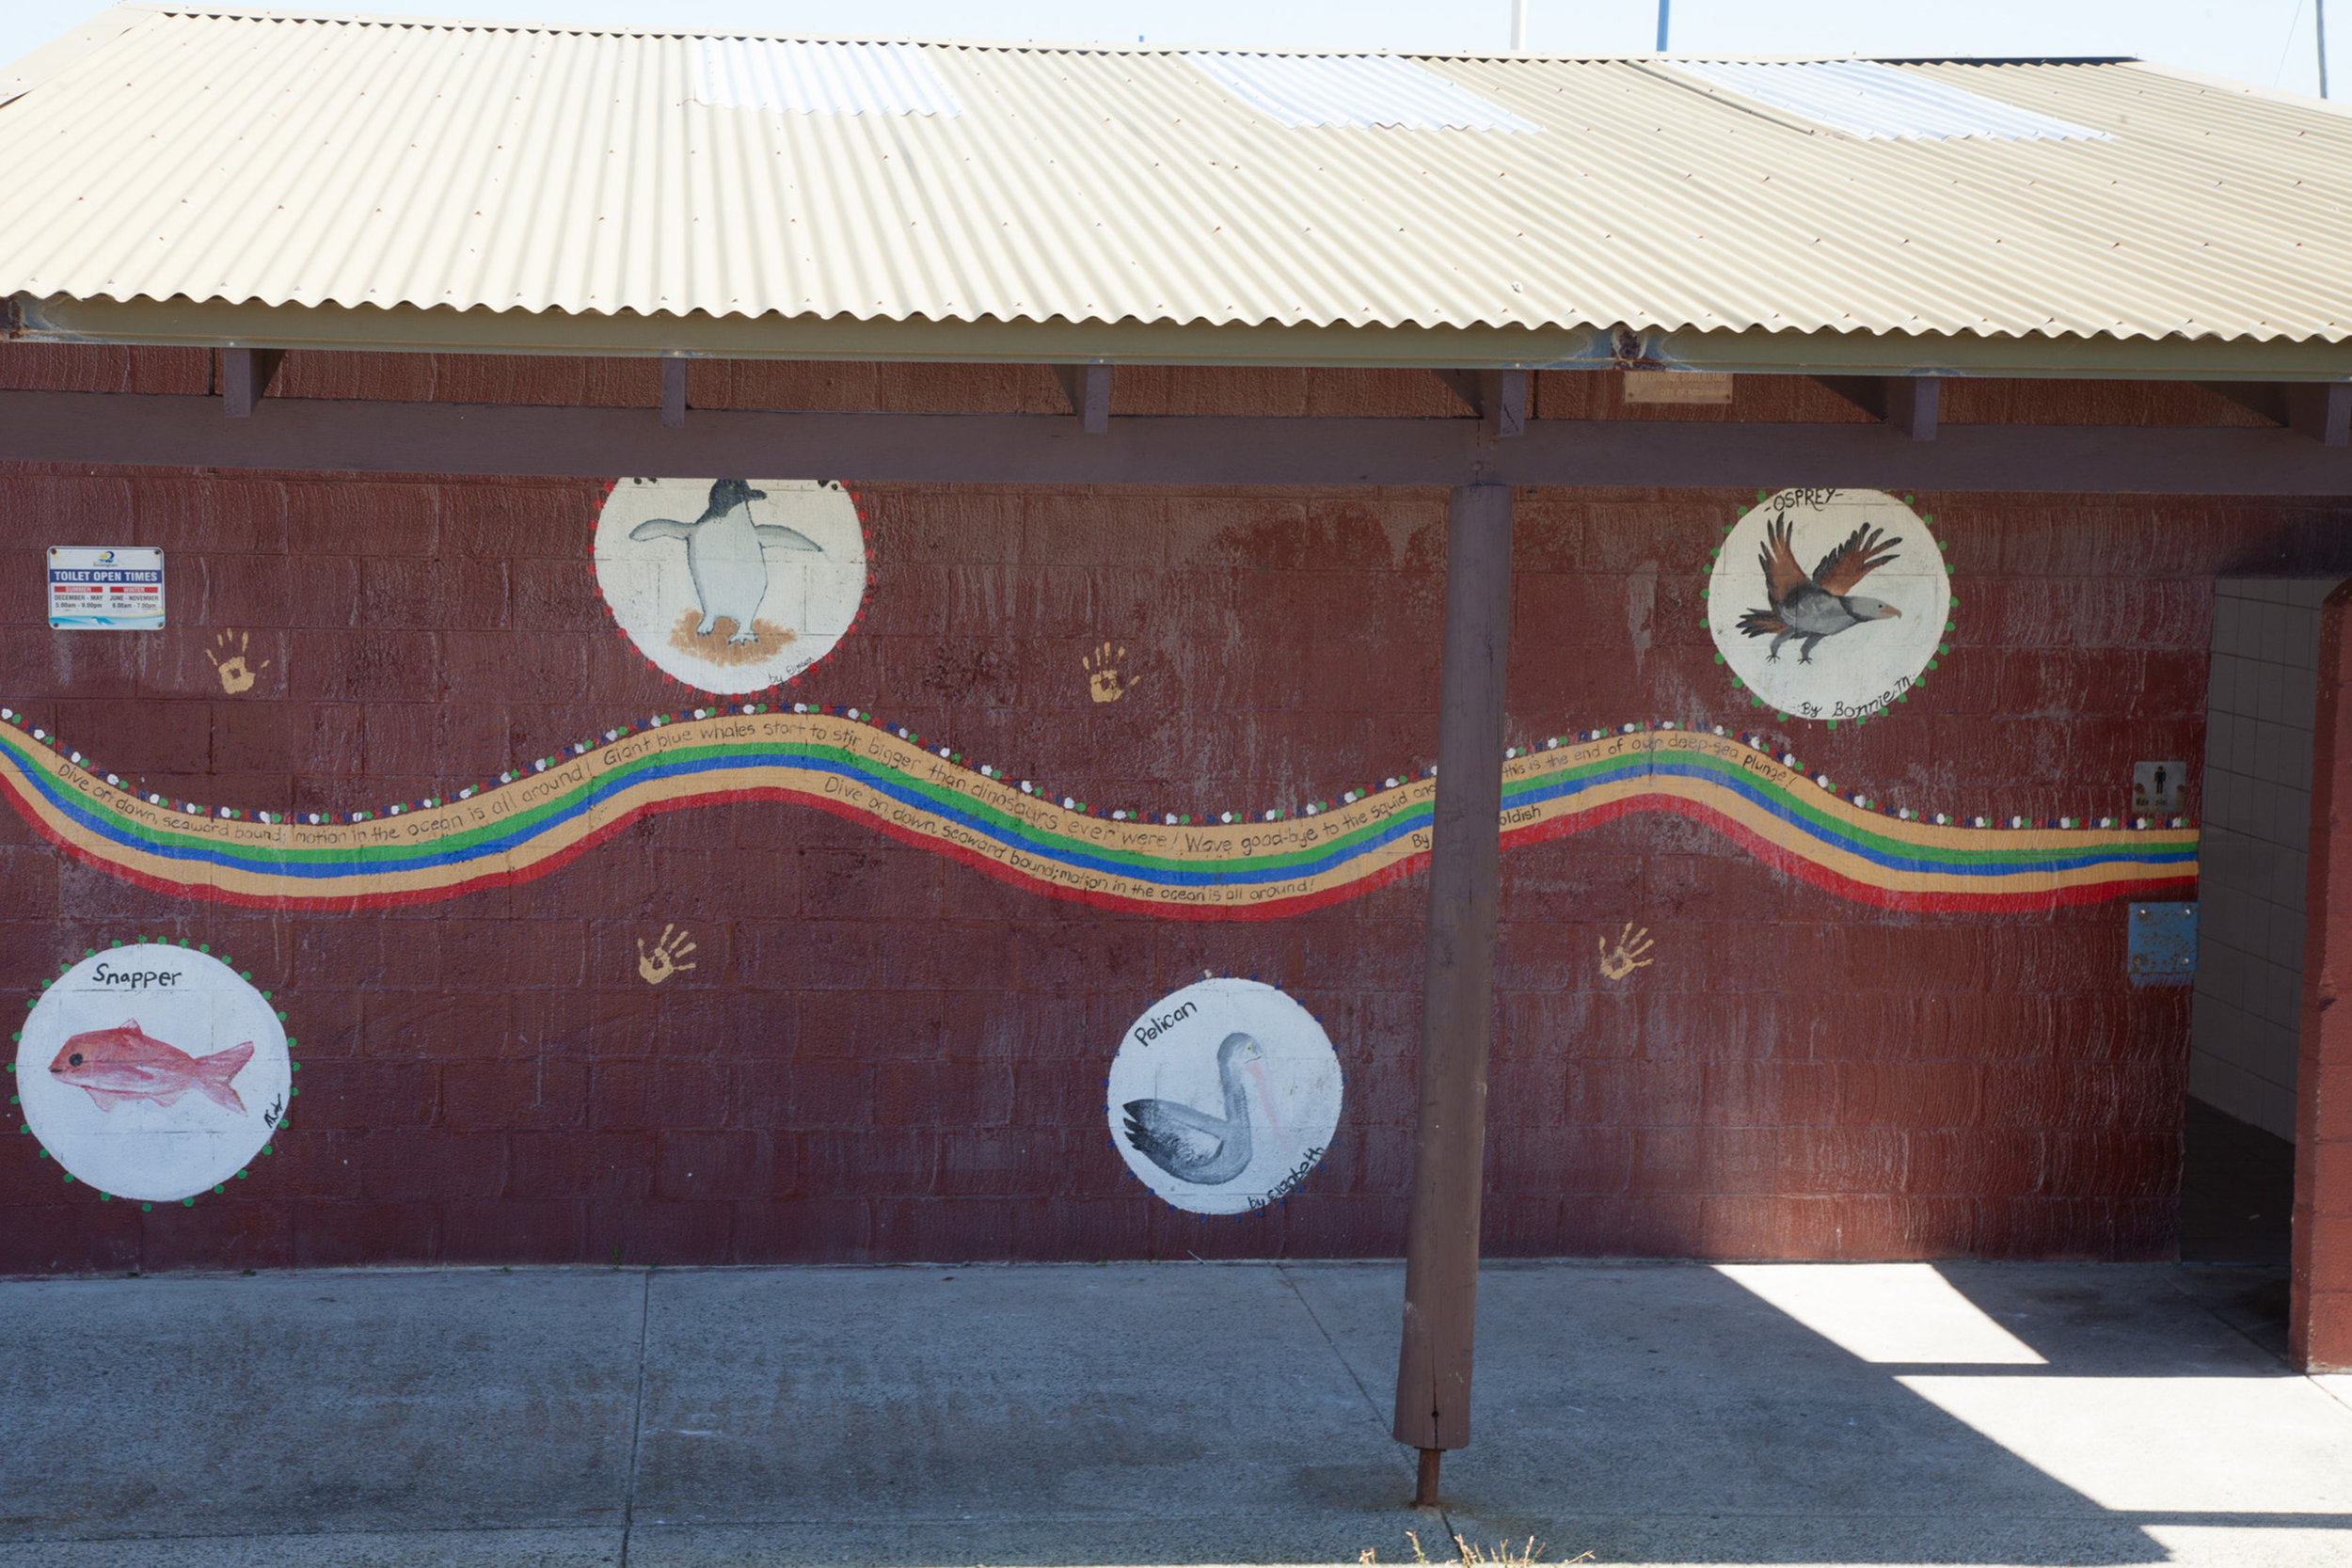 Plate 9: Re-painted toilet block about halfway along the Warnbro Beach Road section of the walk.